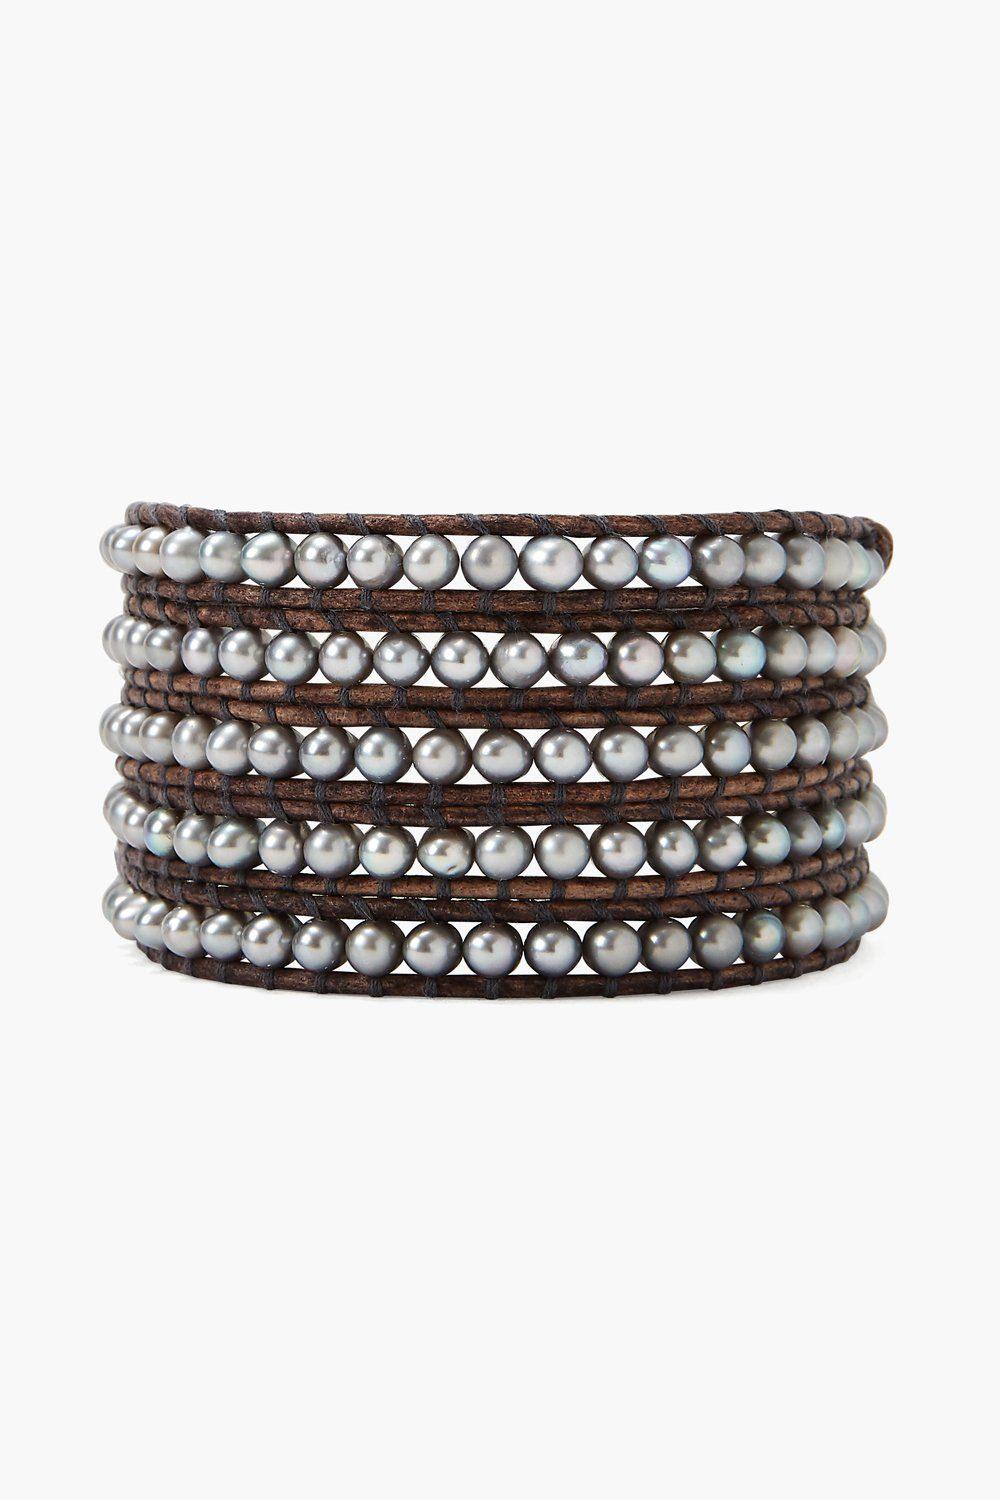 Pearl and Natural Leather 5-Wrap Bracelet BS-1289